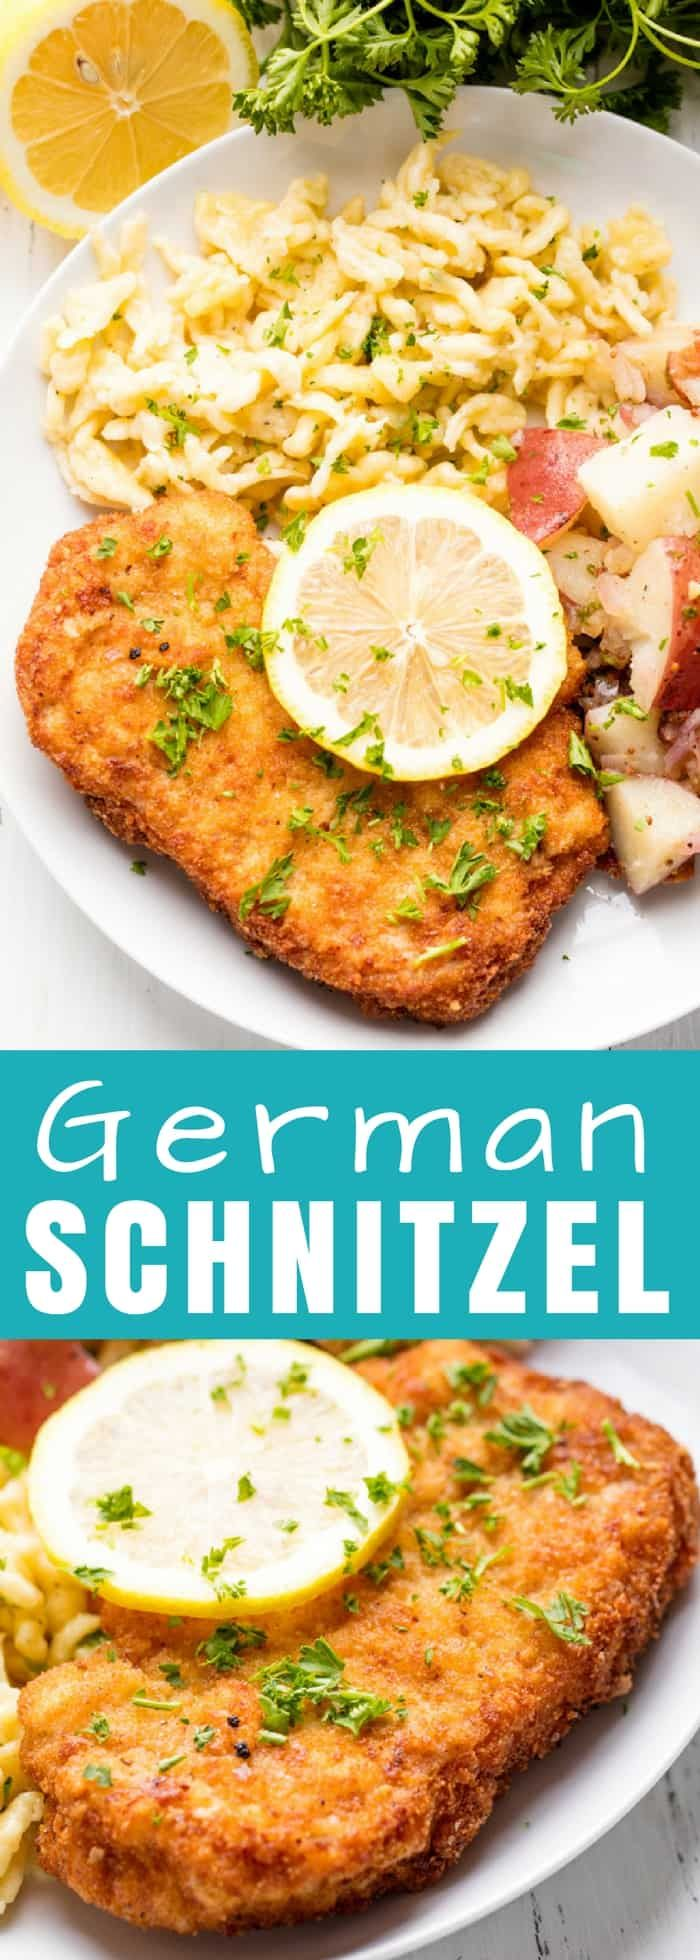 This Authentic German Schnitzel Recipe has been passed down for generations. Use this same method for pork schnitzel, veal schnitzel (weiner schnitzel), or chicken schnitzel.  #Germanfood #pork